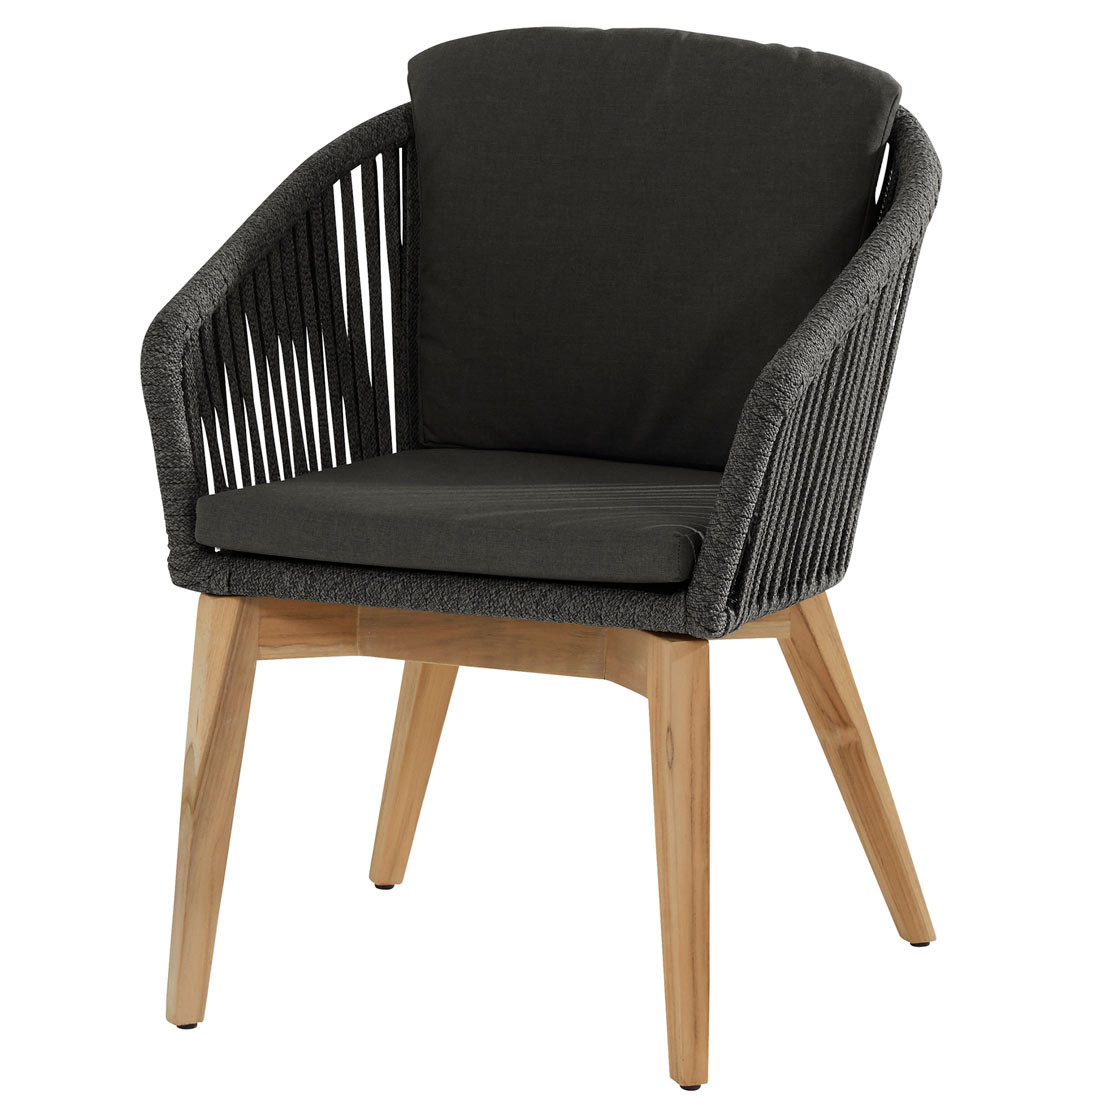 Santander dining chair Teak Black rope with 2 cushions